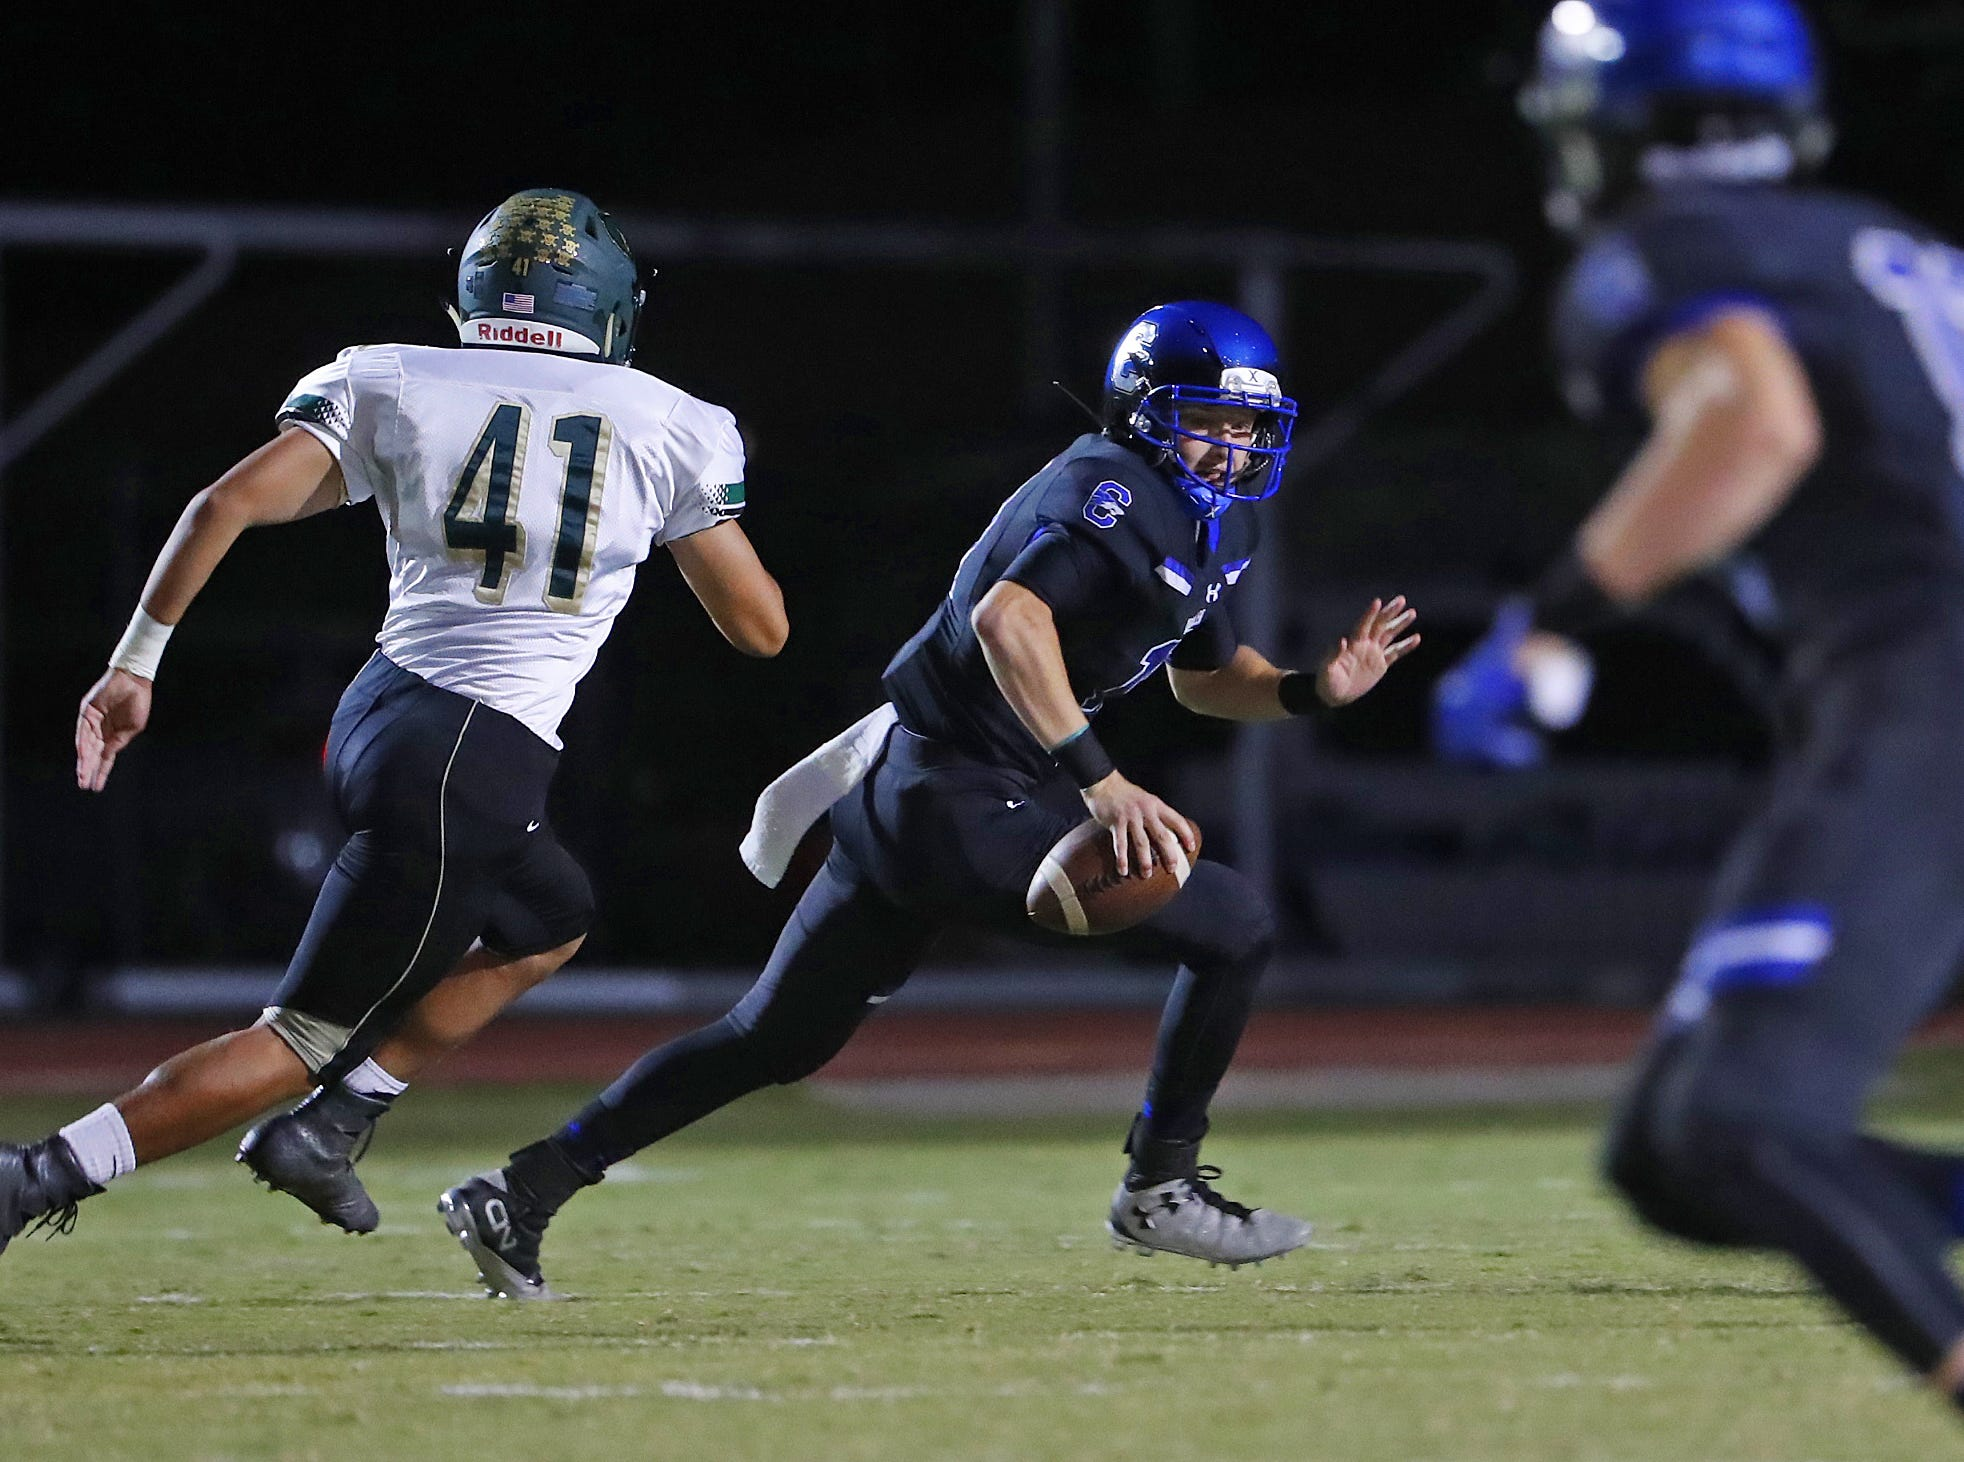 Basha's Charles Gilbert (41) chases down Chandler quarterback Jacob Conover (17) at Chandler High School in Chandler, Ariz. on October 12, 2018.